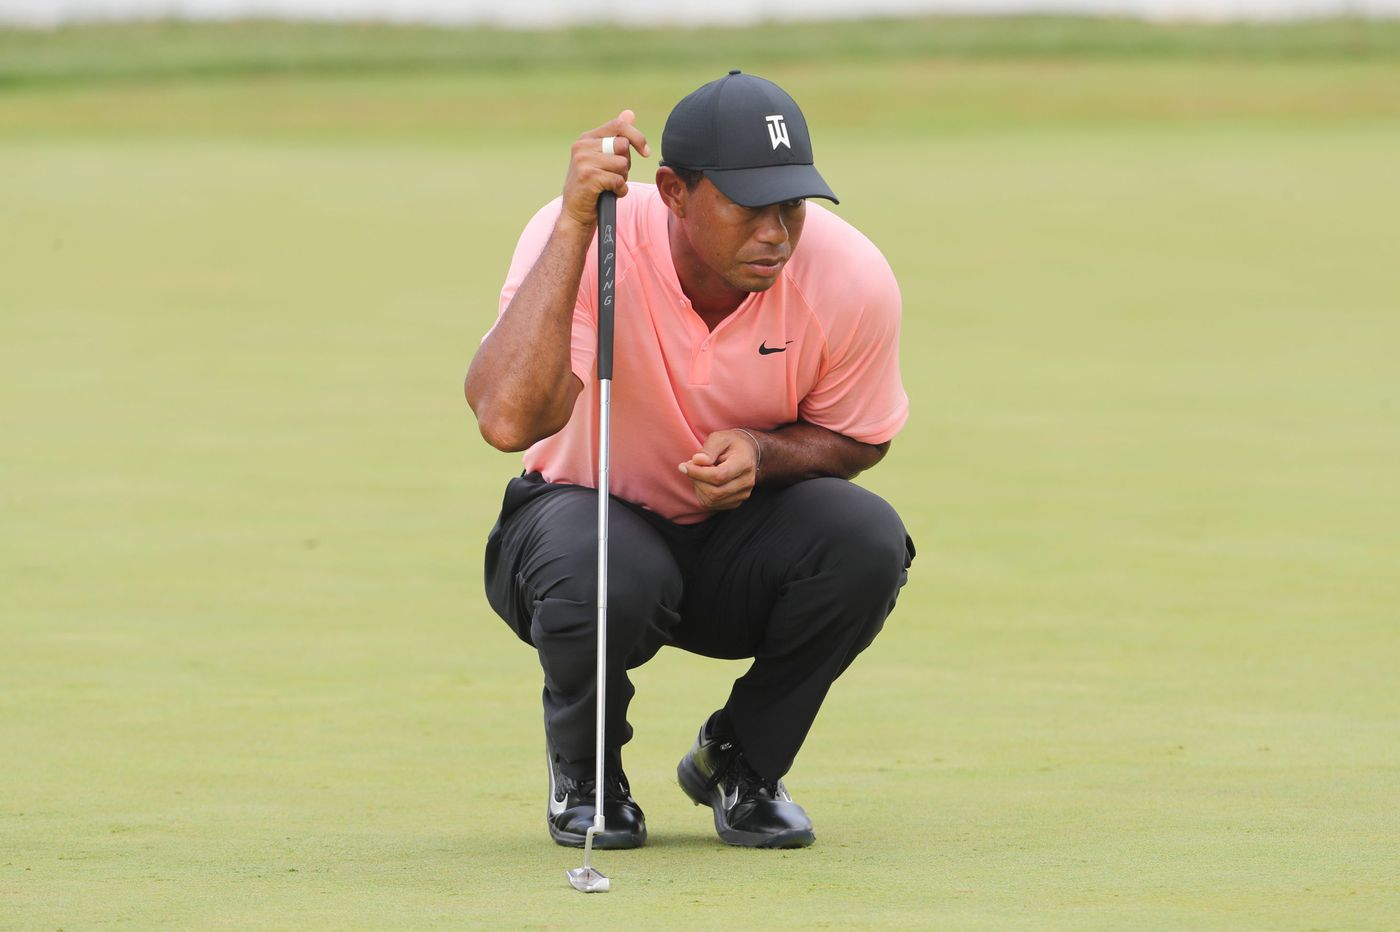 Tiger Woods stays at 8-under midway through BMW Championship